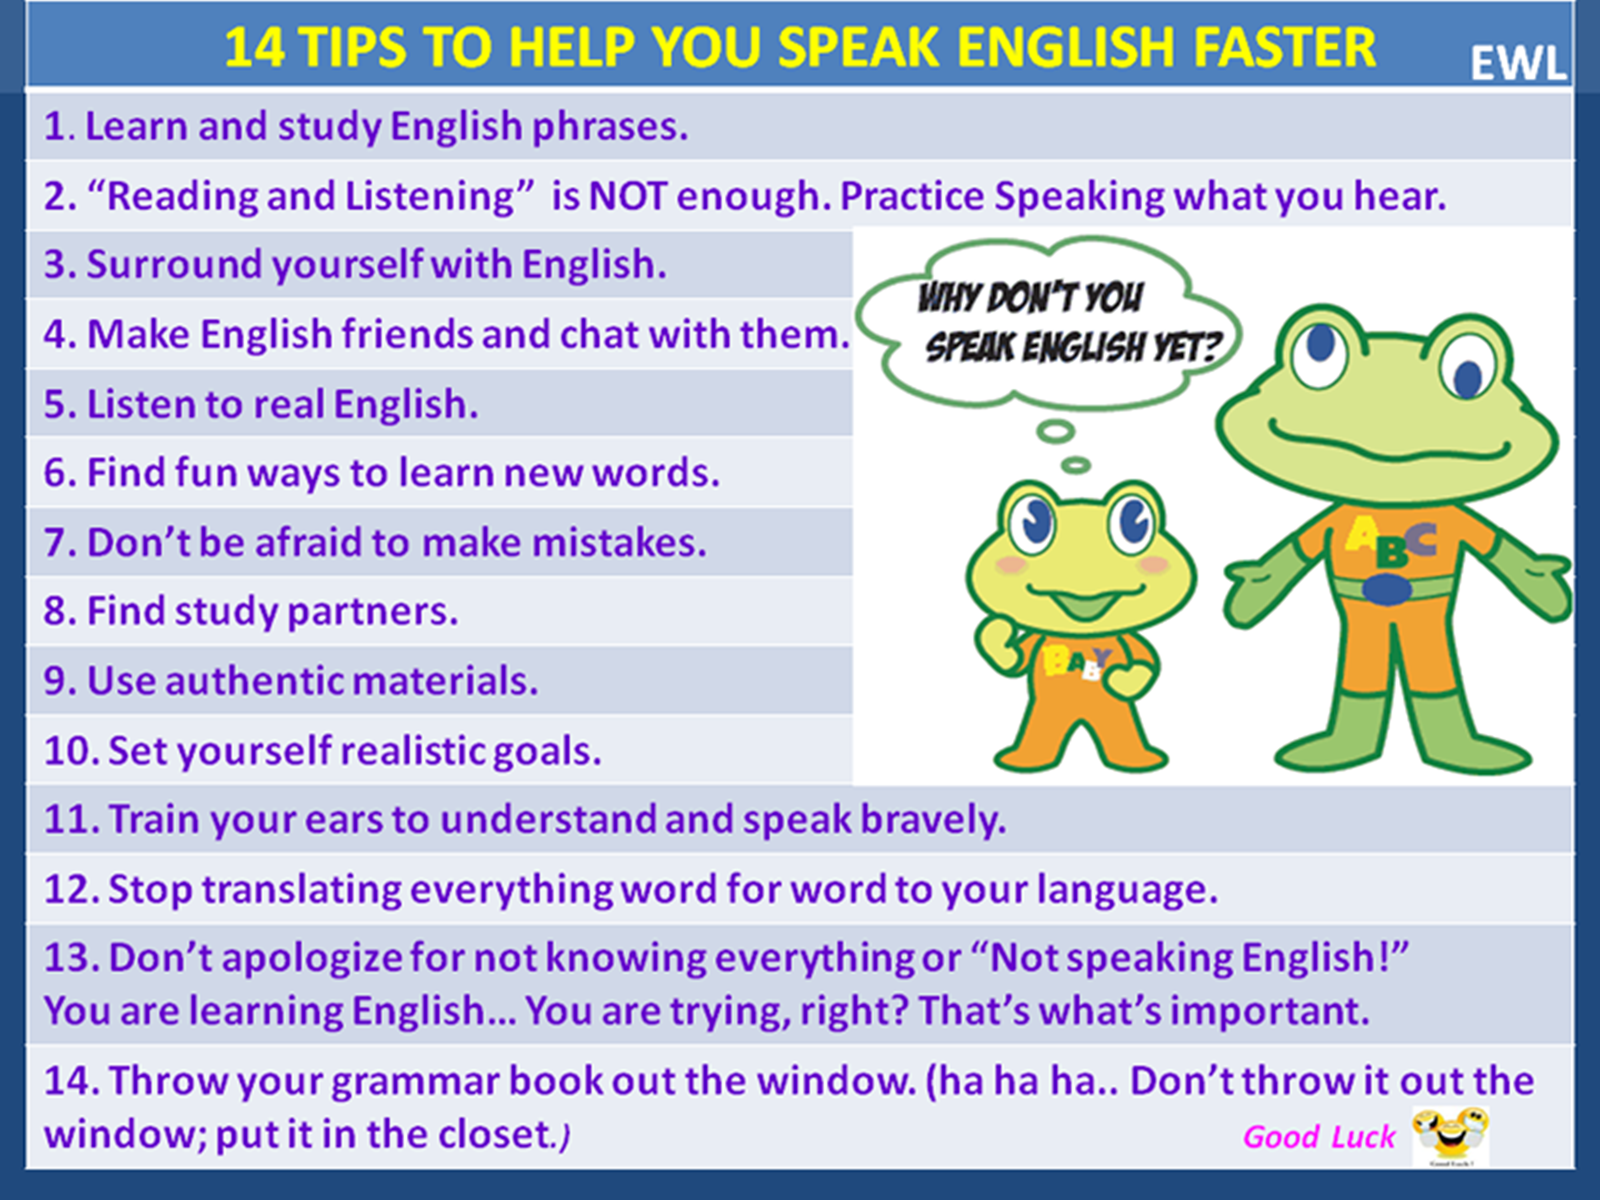 how do i learn english Access for up to 5 family members download activation key included learn at  your own pace with our course that never expires proprietary speech-recognition .